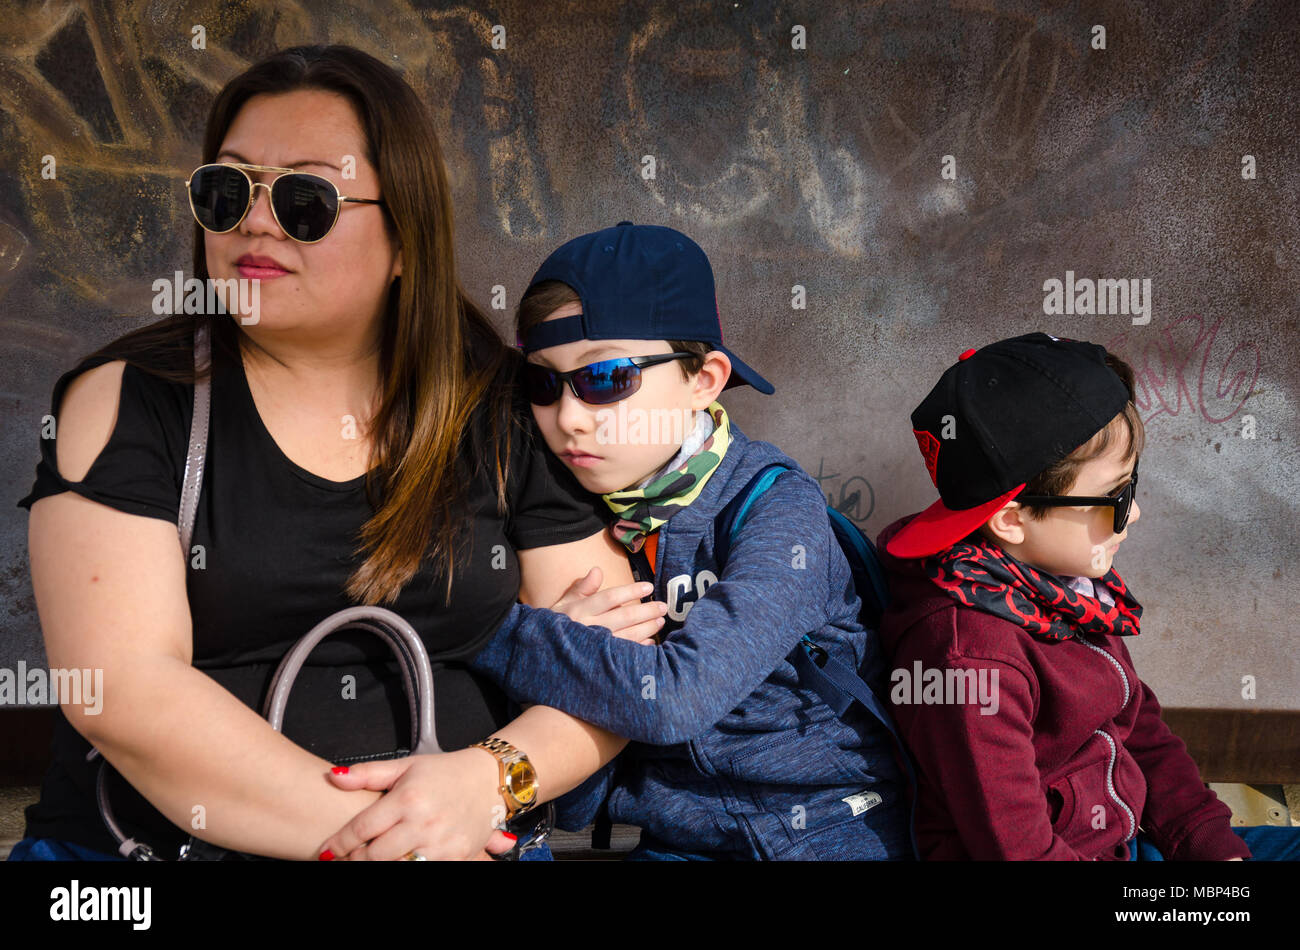 a-mother-sits-and-waits-with-her-two-young-children-for-a-train-while-on-holiday-in-spain-MBP4BG.jpg